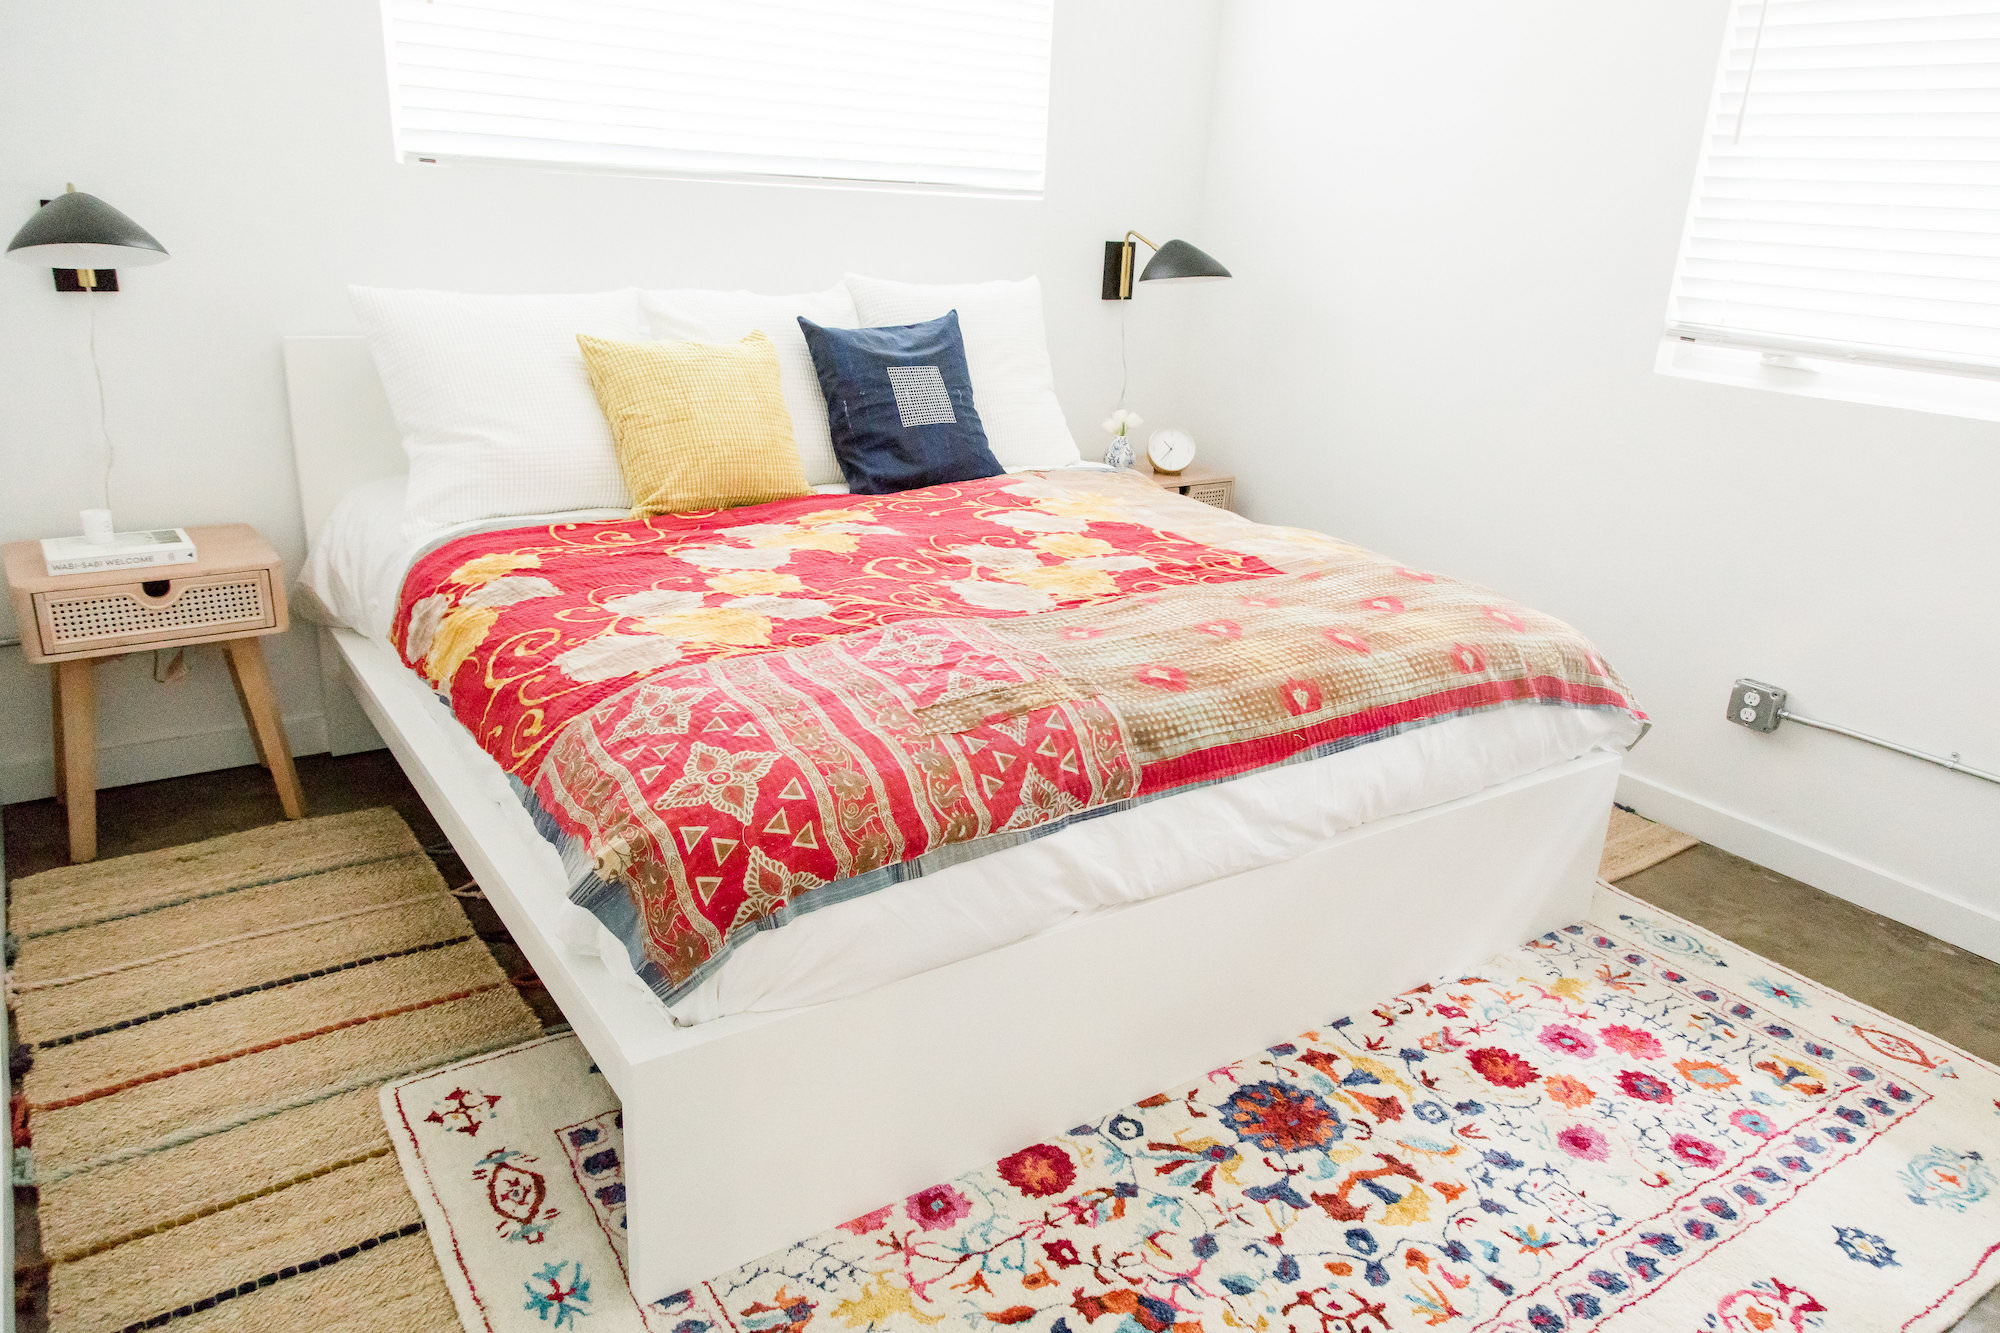 mid-century-modern-bedroom-vacation-rental-white-red-the-park-web-res.jpg